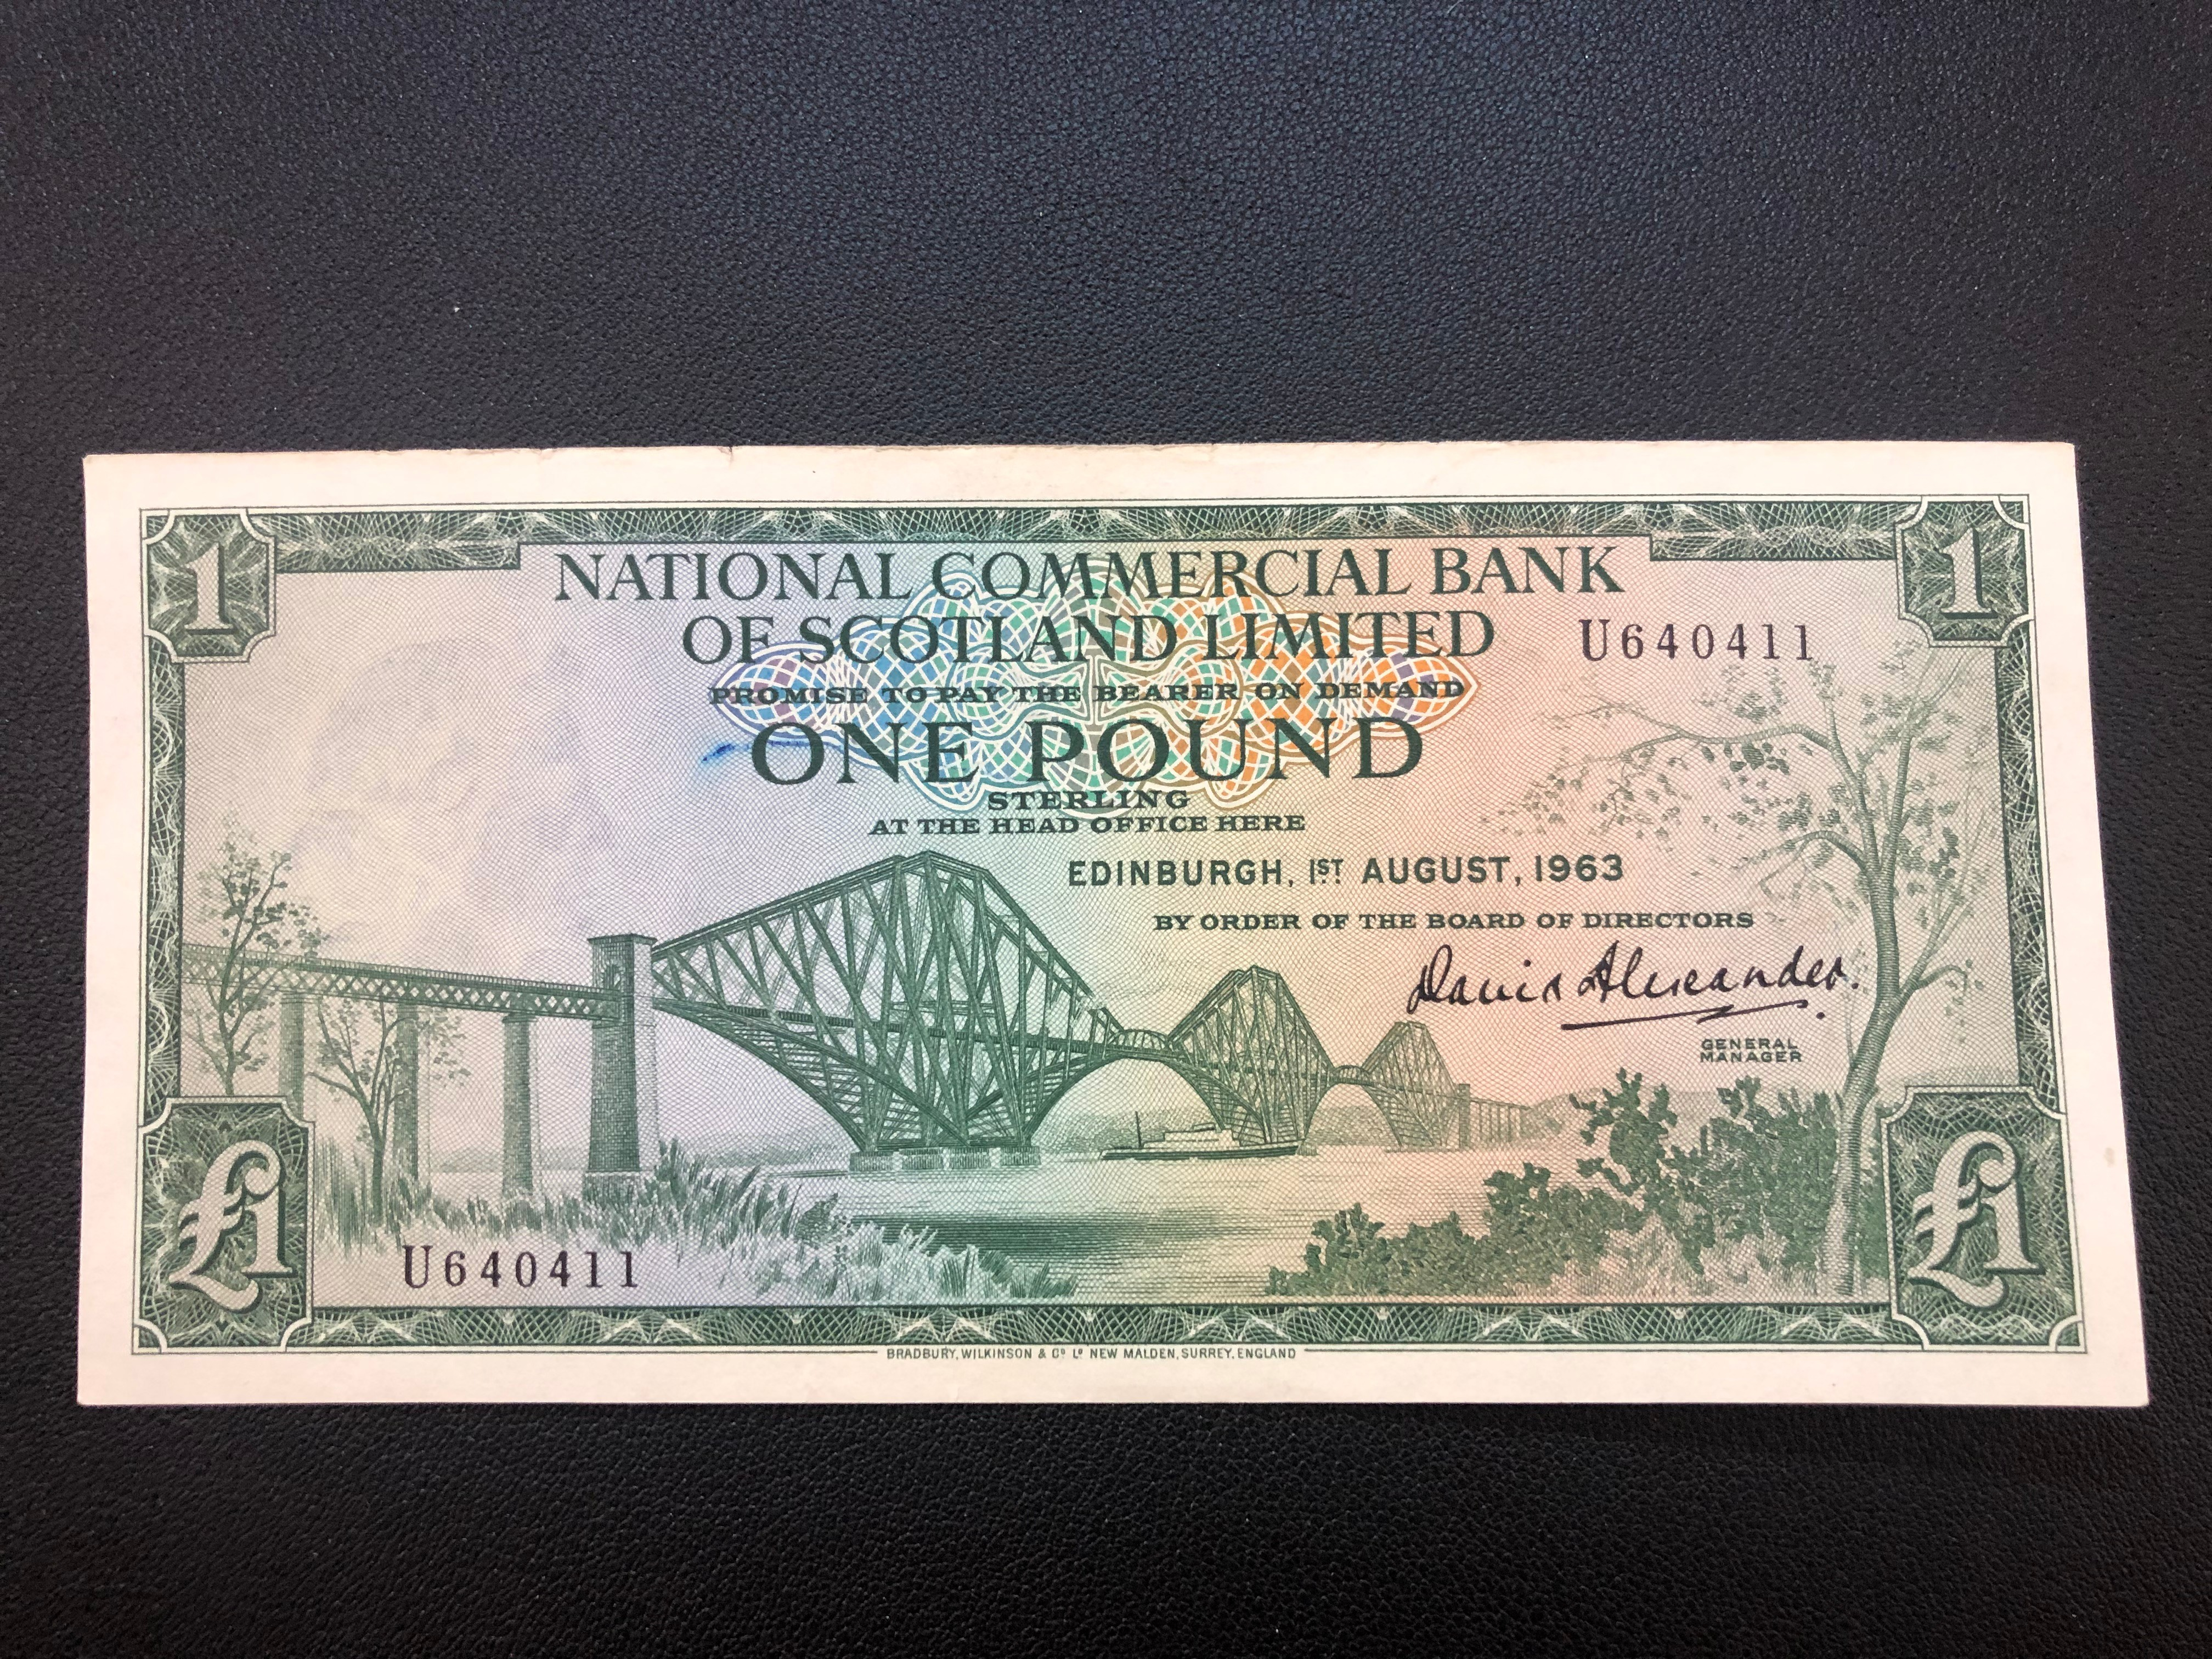 Scotland  1 Pound 1963 269a National Commercial Bank AU with top nick.jpg